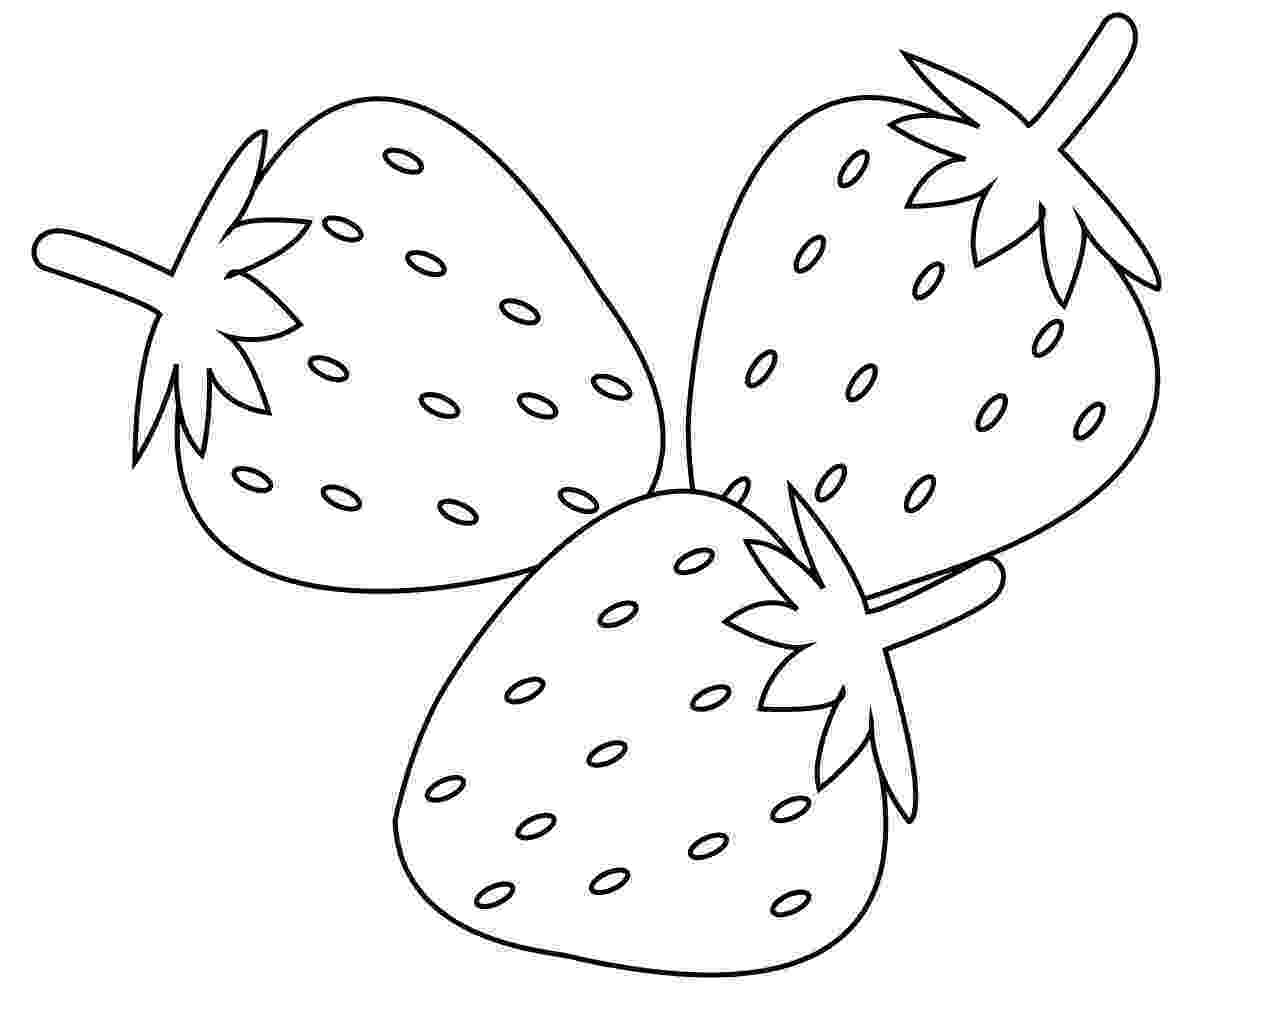 coloring strawberry free printable fruits coloring pages for kids online coloring strawberry